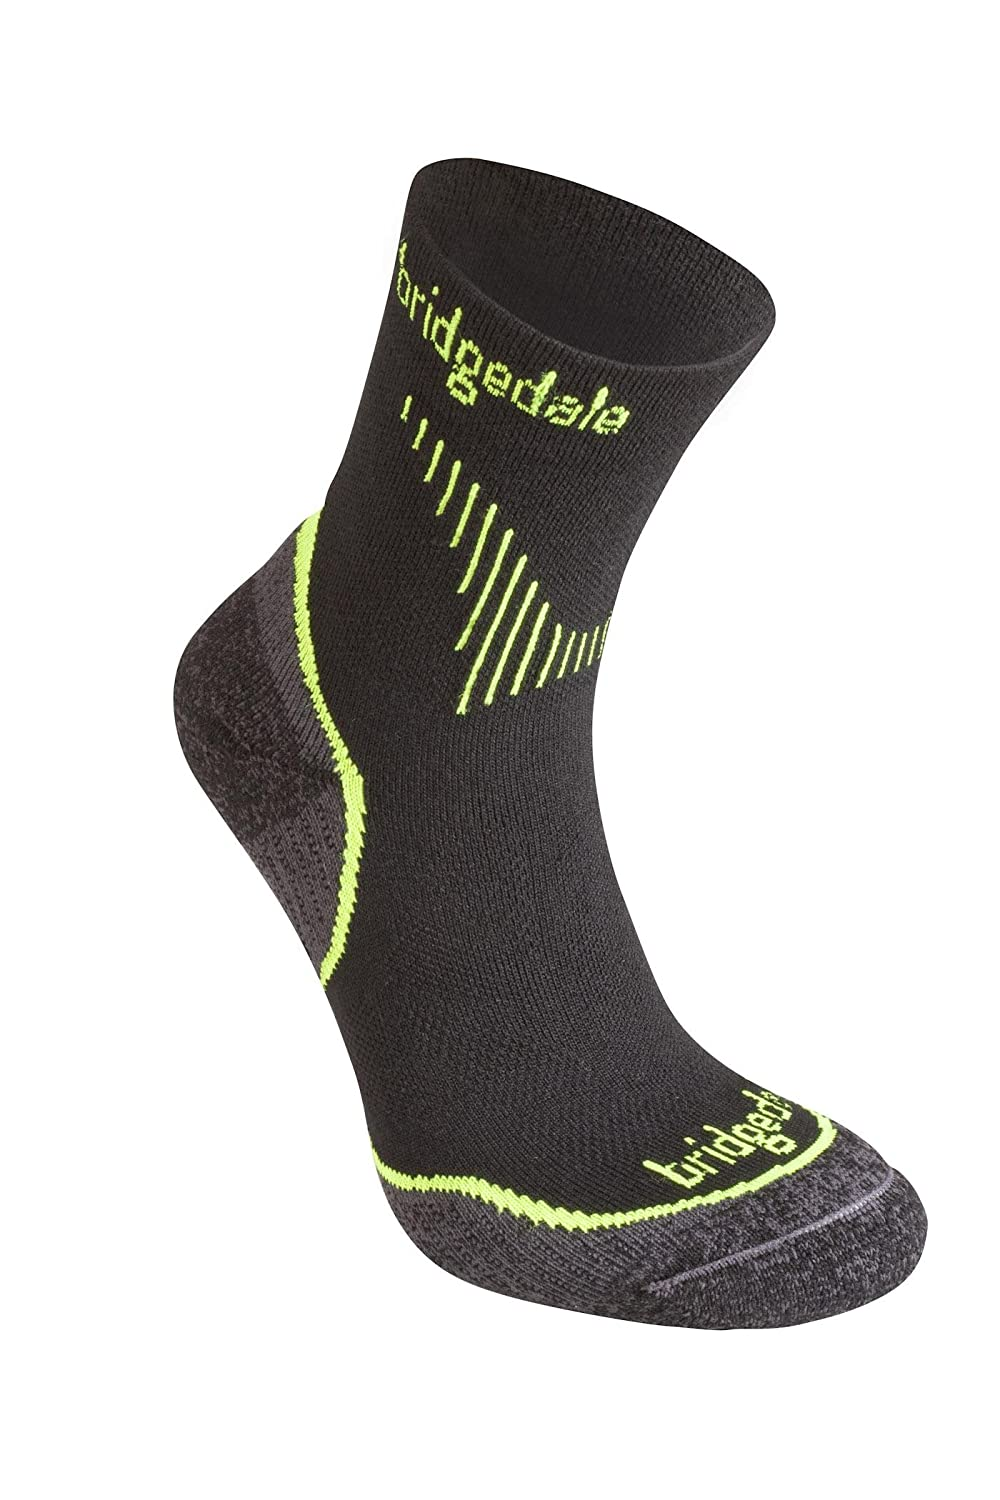 Bridgedale Men's Qw-Ik Socks Bridgedale North America A Division of Outdoor & Sports Co. Inc. B612184-715-M